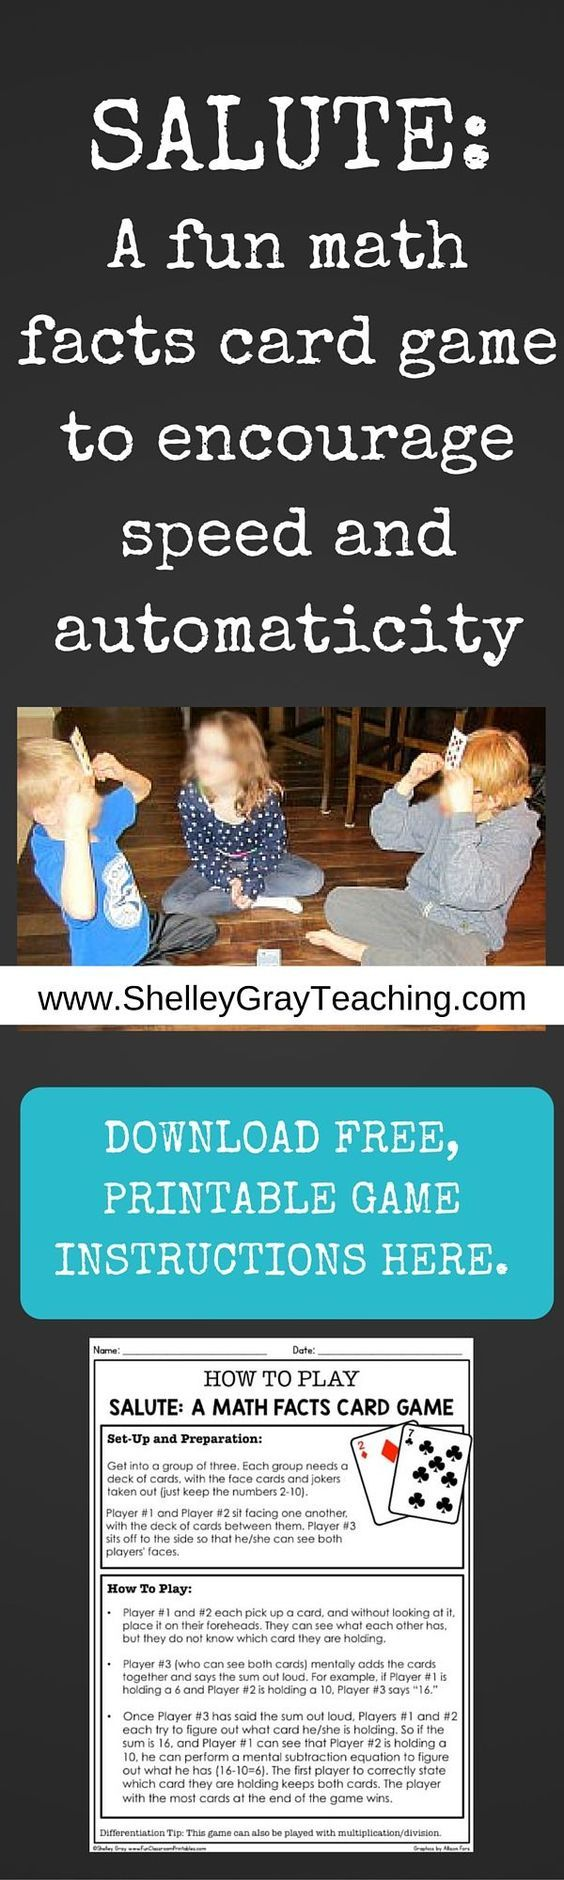 86 best Math Games images on Pinterest | Second grade, Teaching math ...